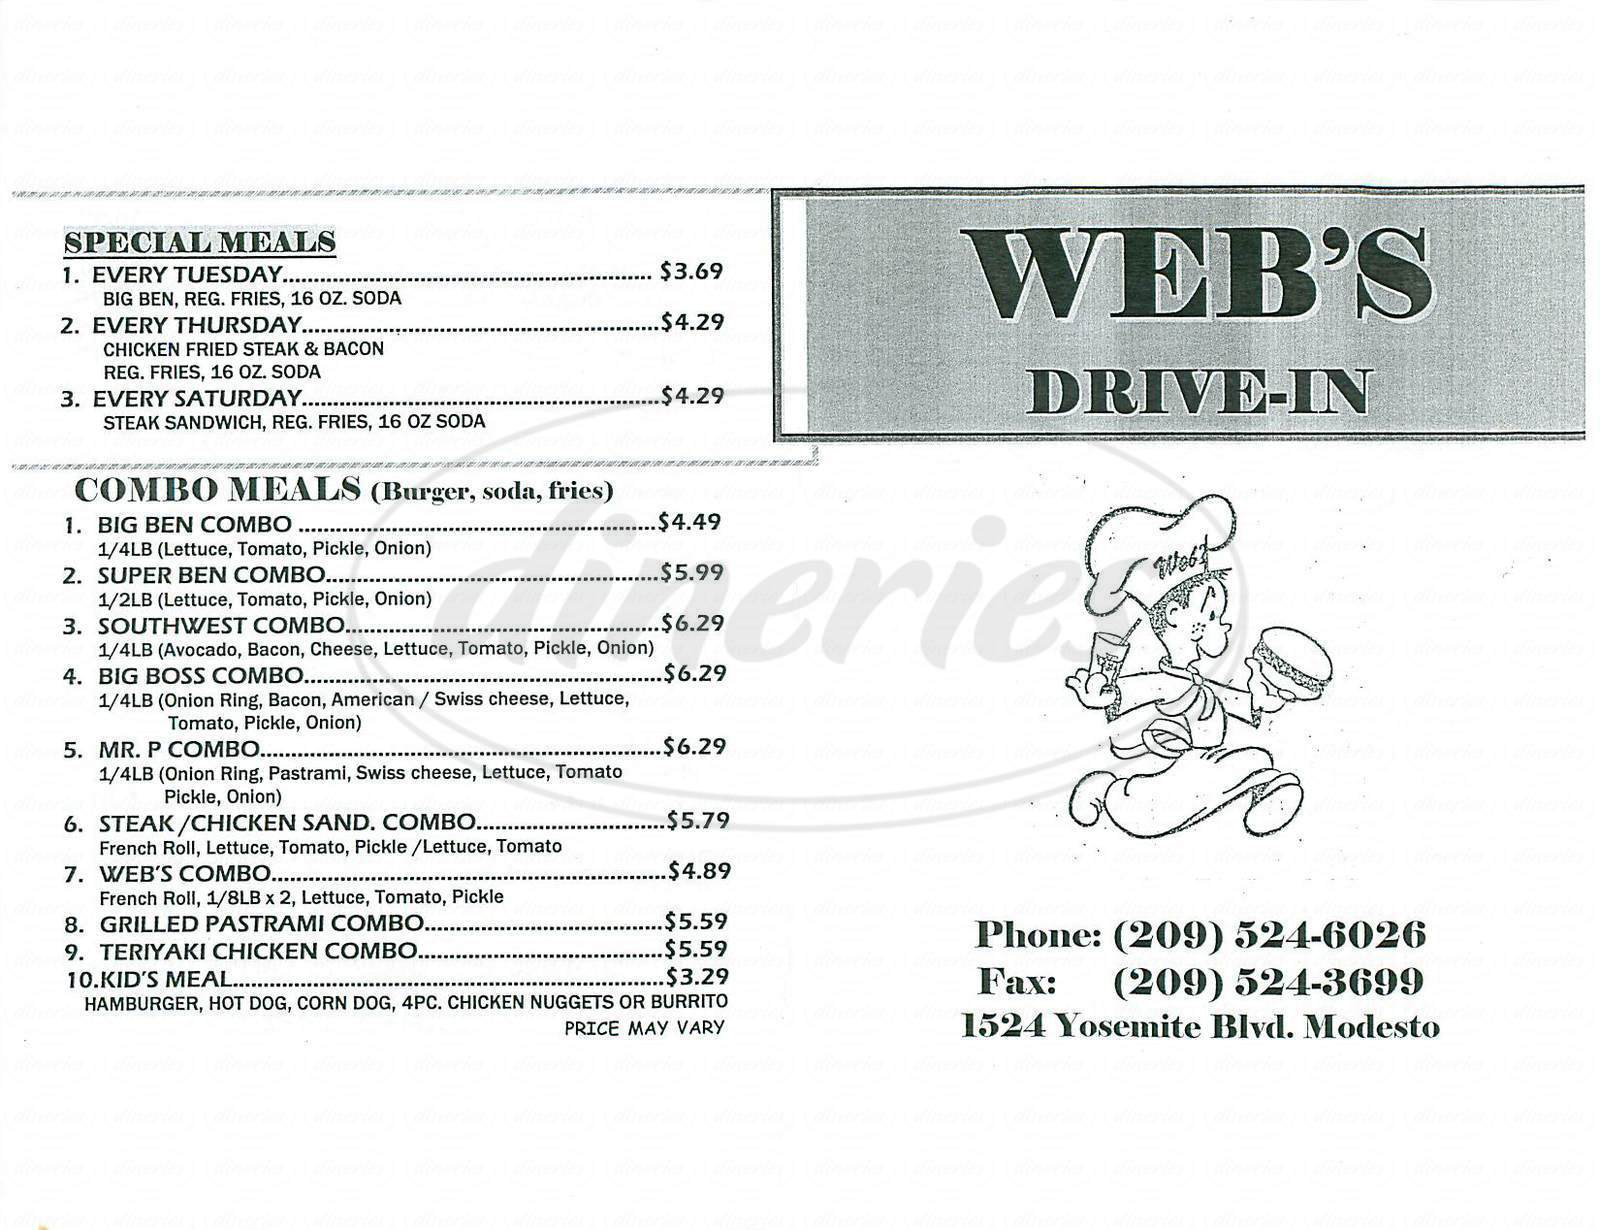 menu for Web's Drive In